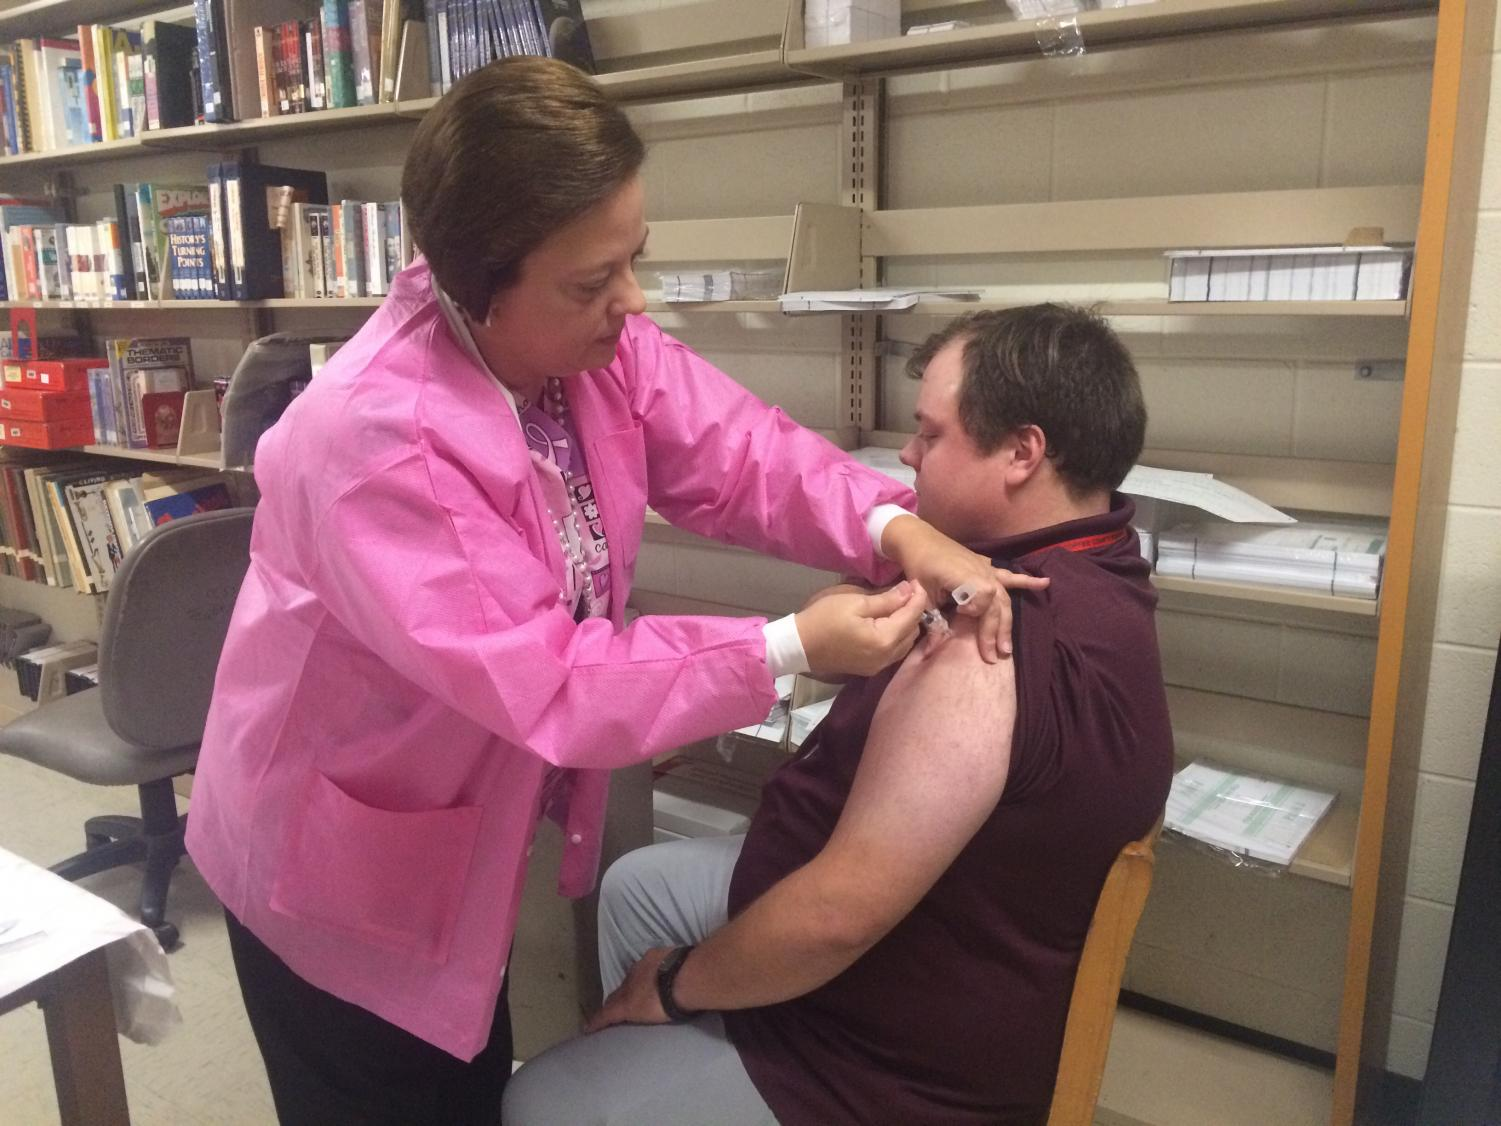 Mr. King receives a dose of the flu shot.